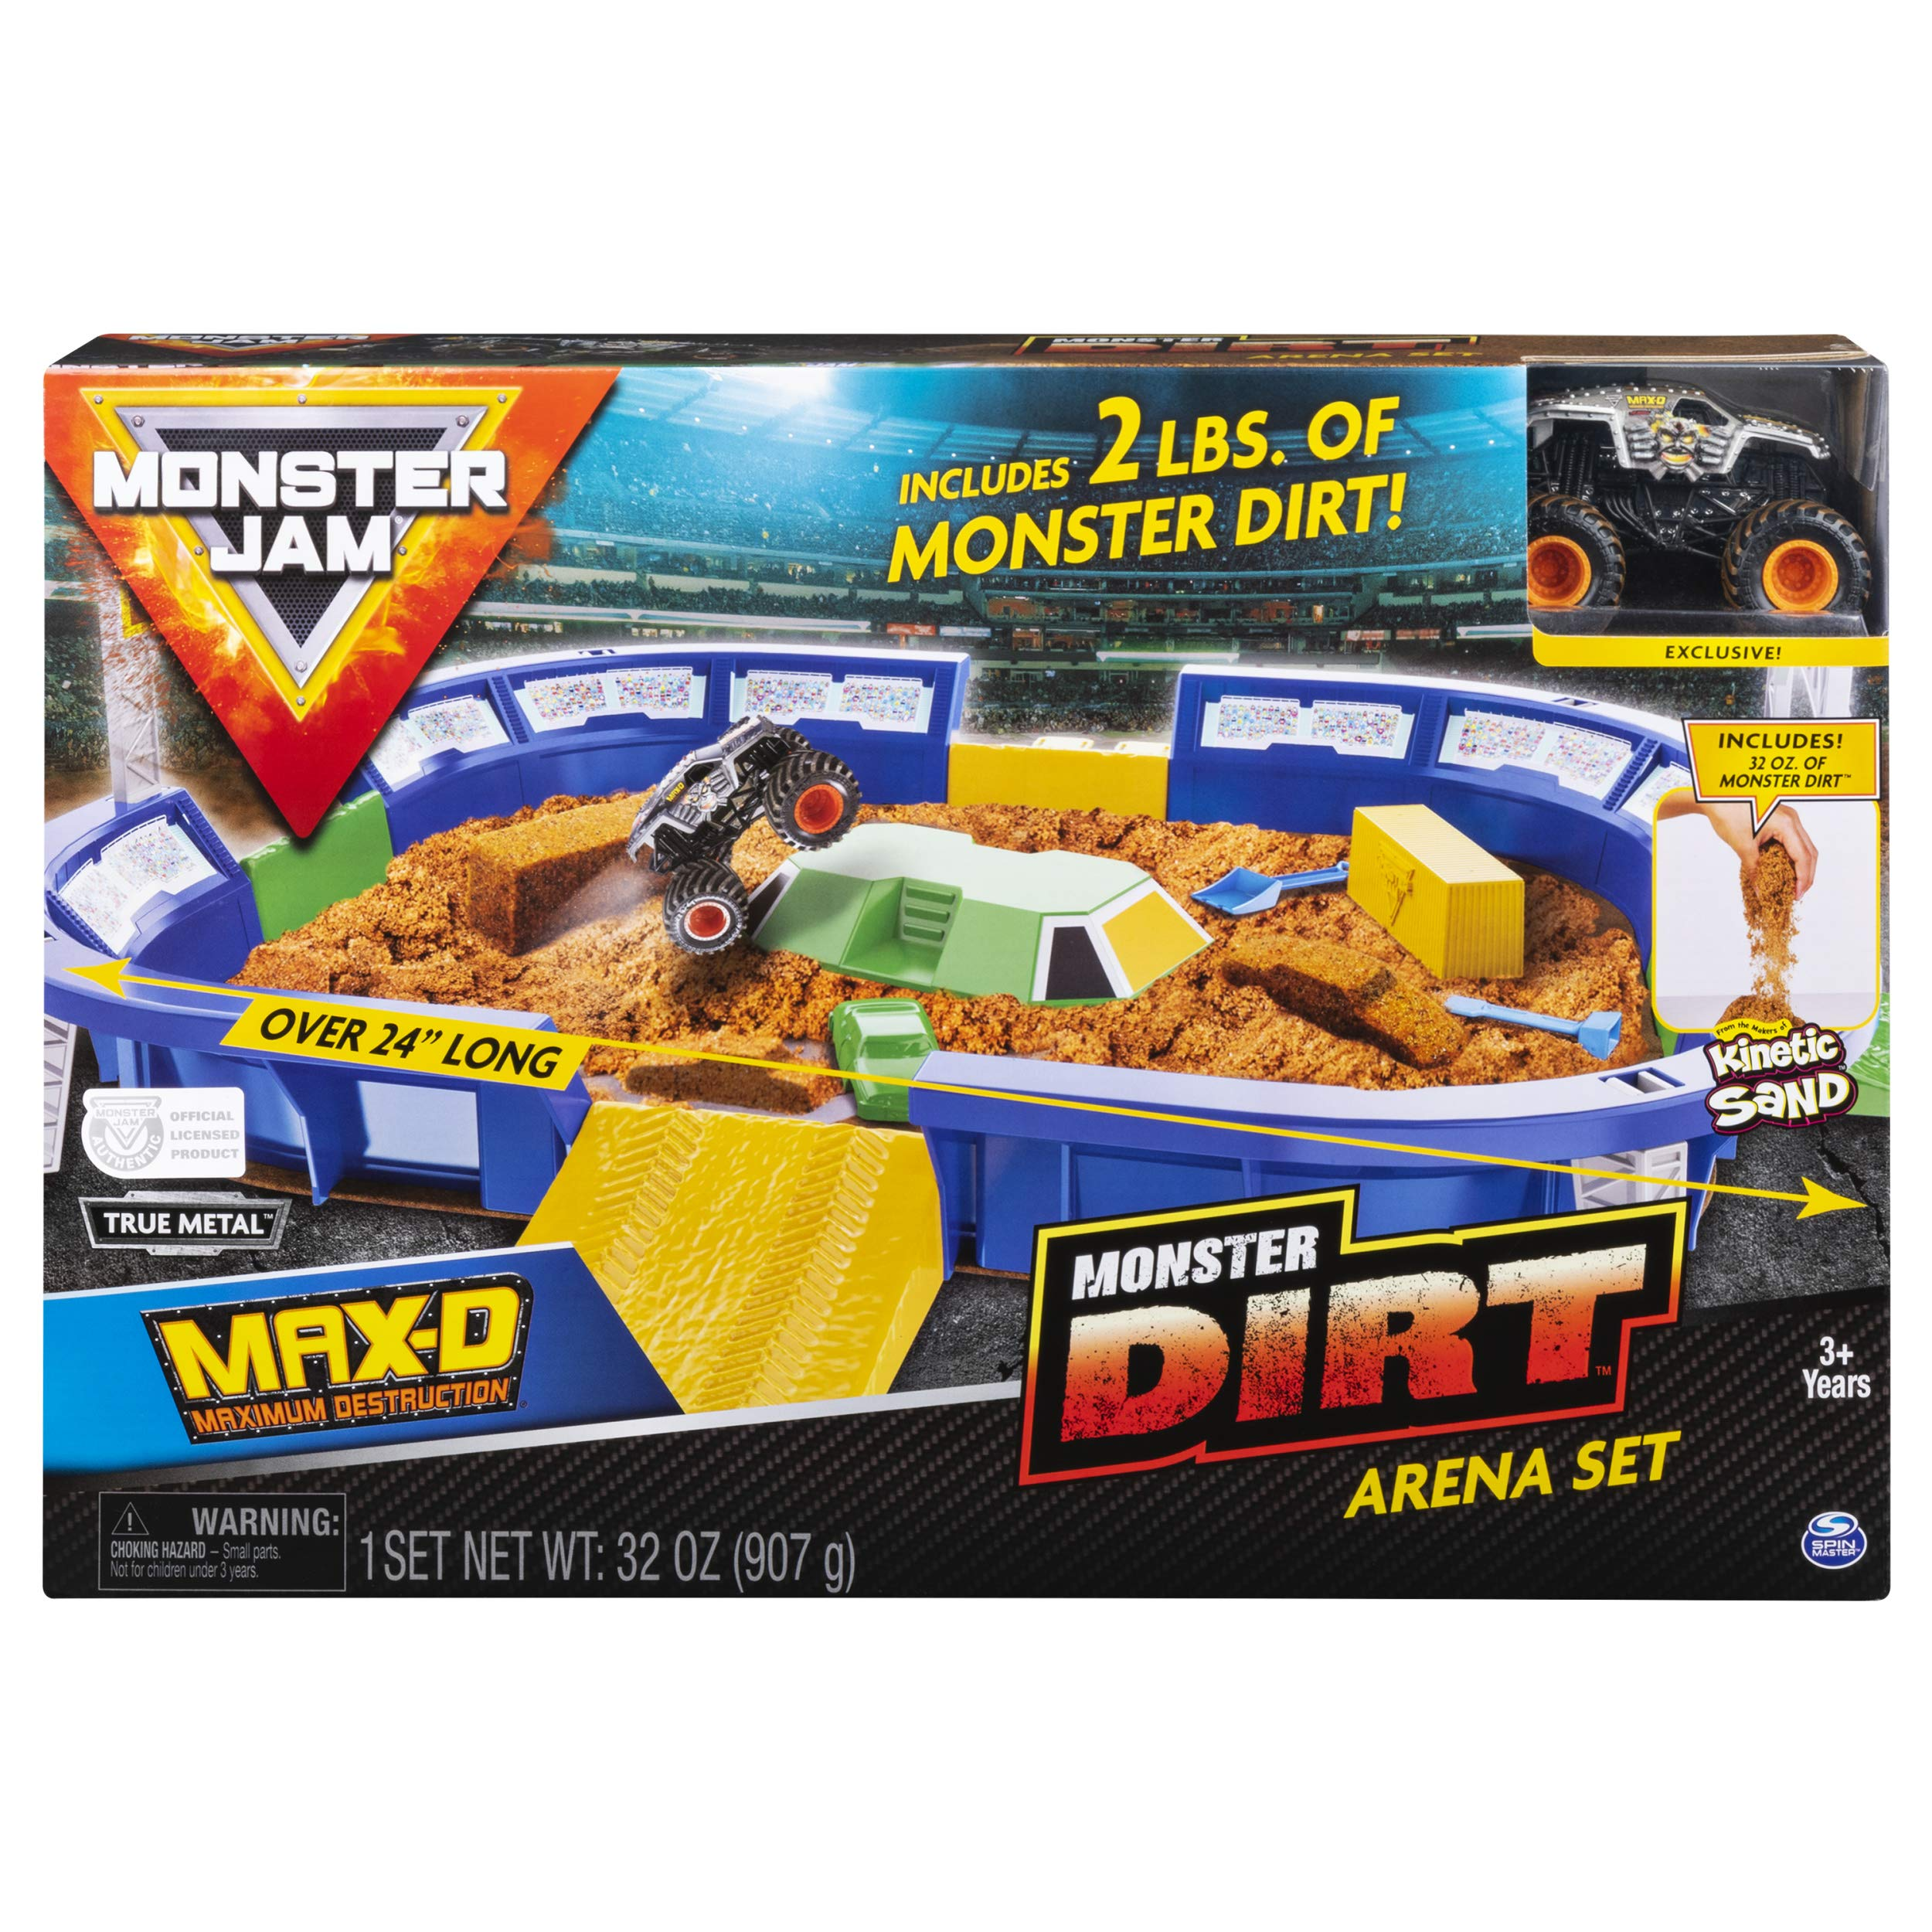 Monster Jam, Monster Dirt Arena 24'' Playset with 2lbs of Monster Dirt & Exclusive 1: 64 Scale Die-Cast Truck by Monster Jam